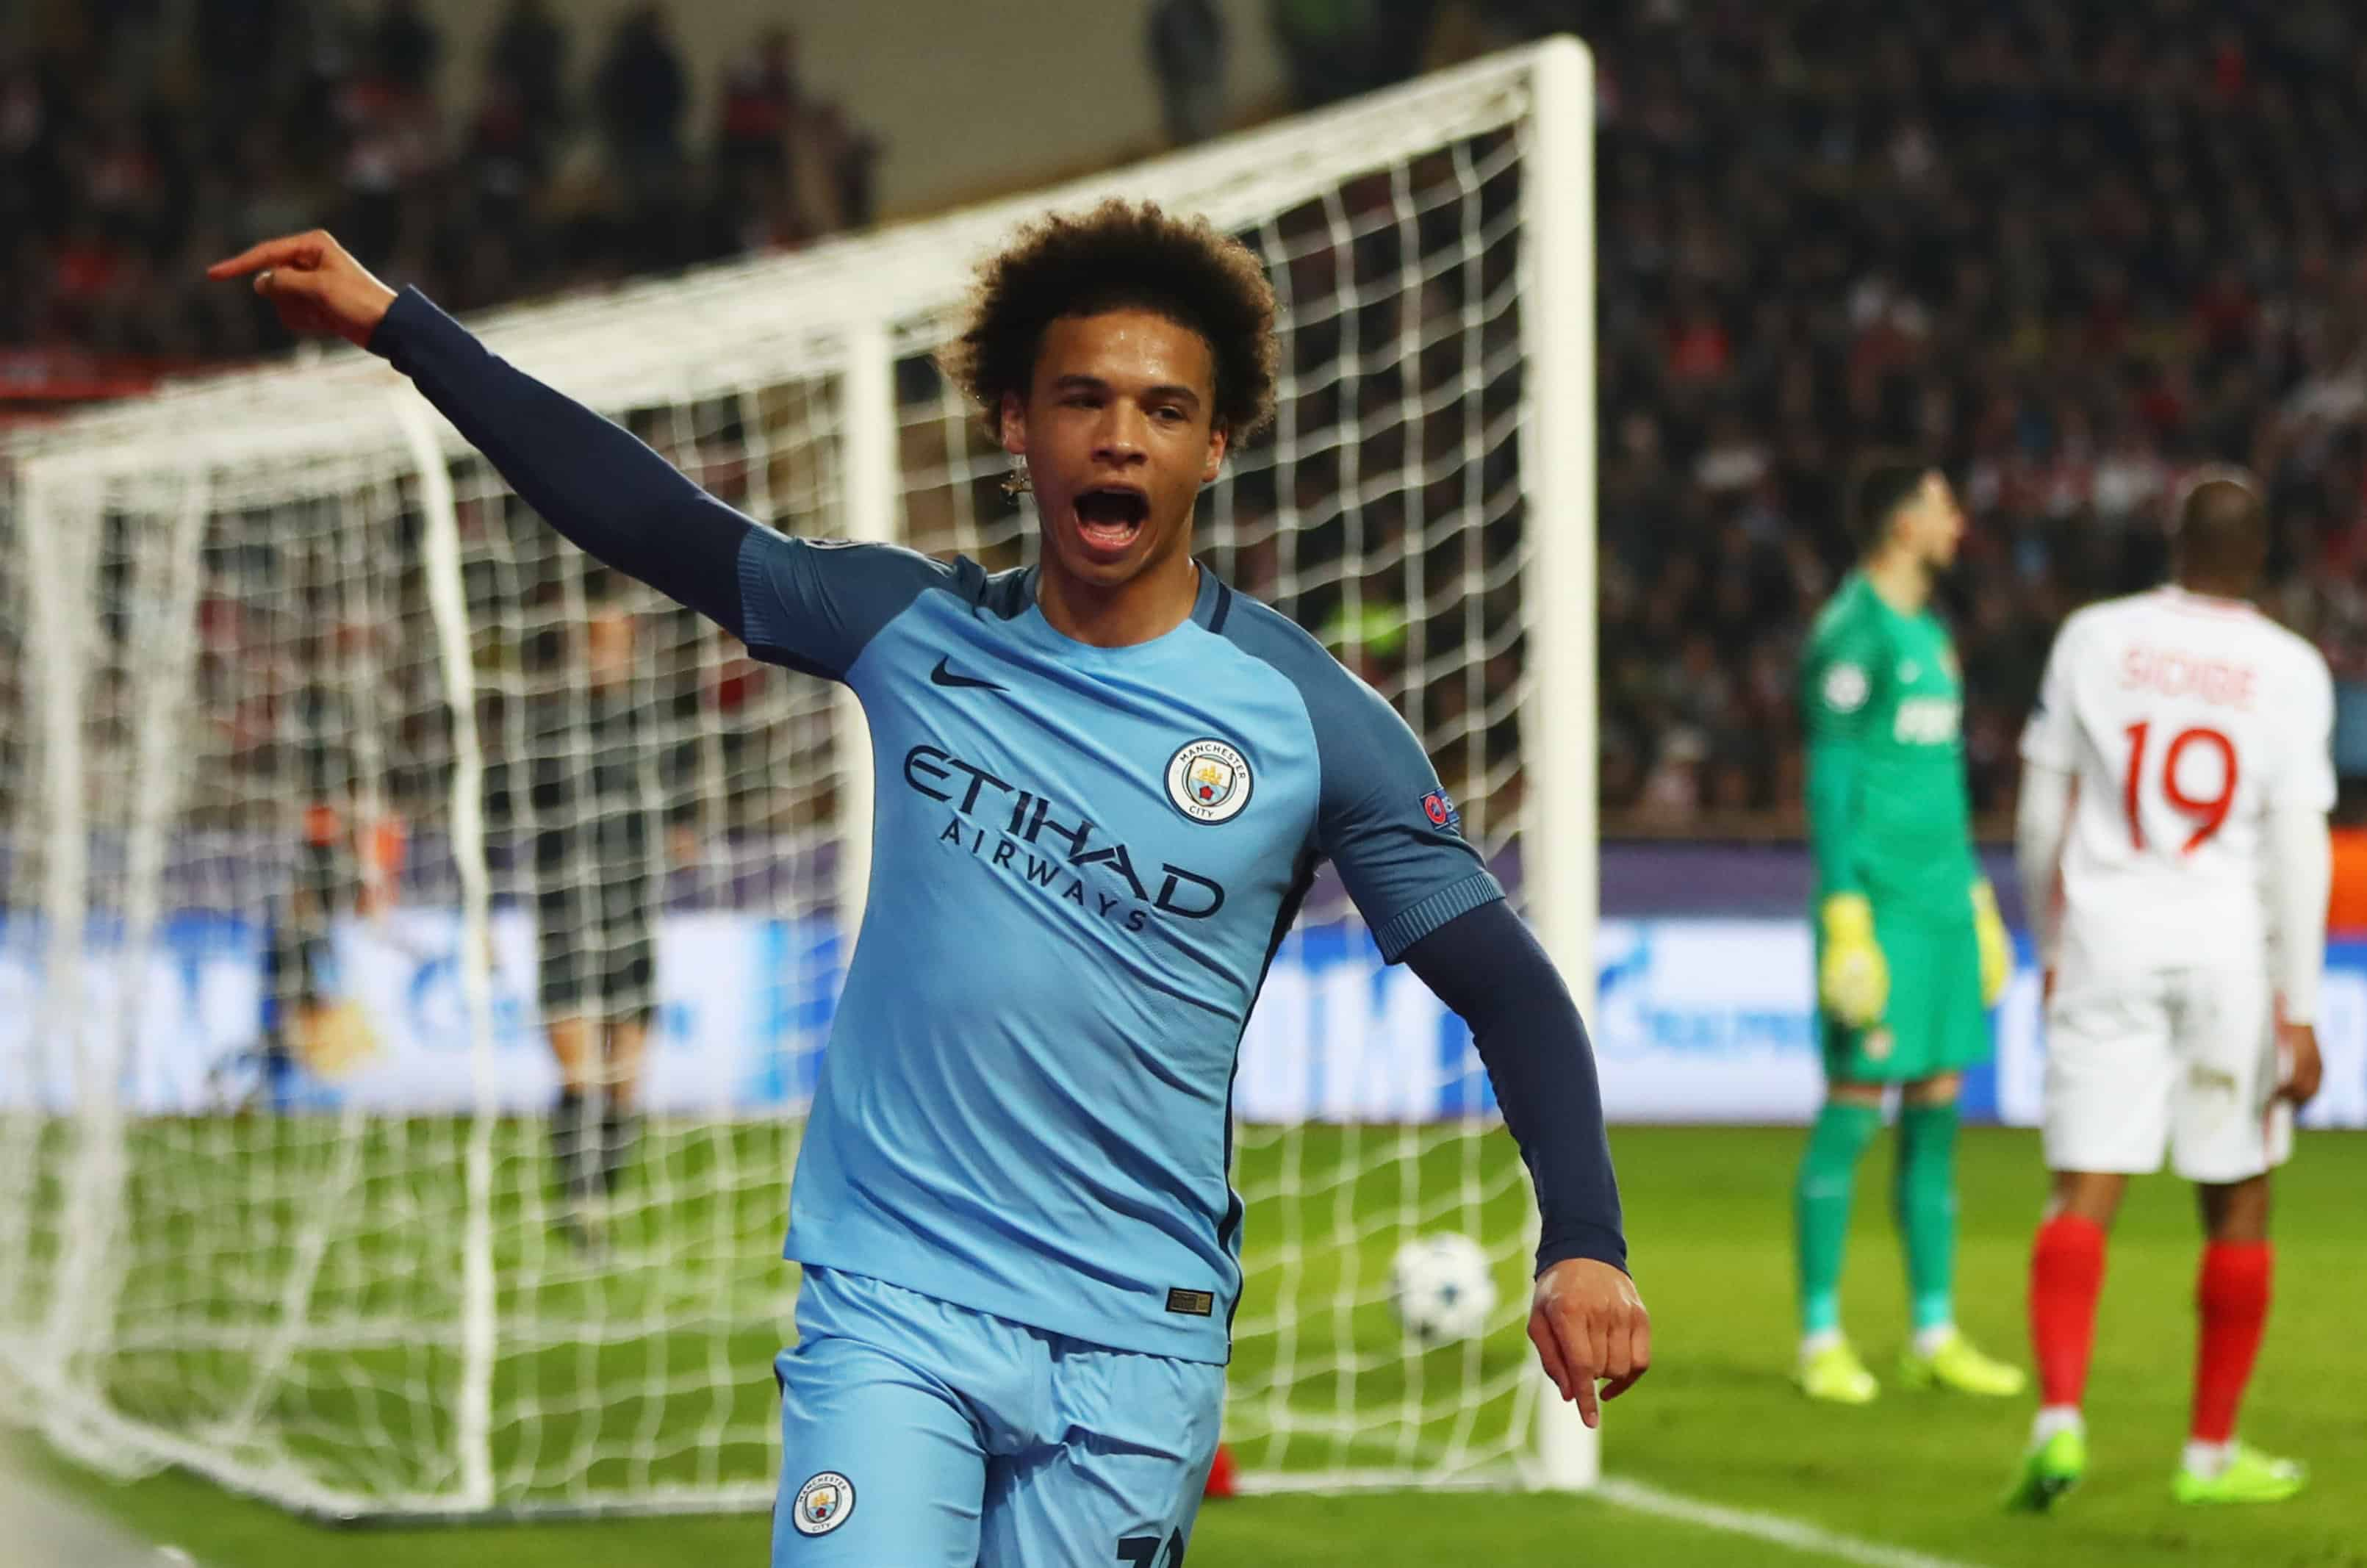 Leroy Sané to score first at 9/2 with Boylesports